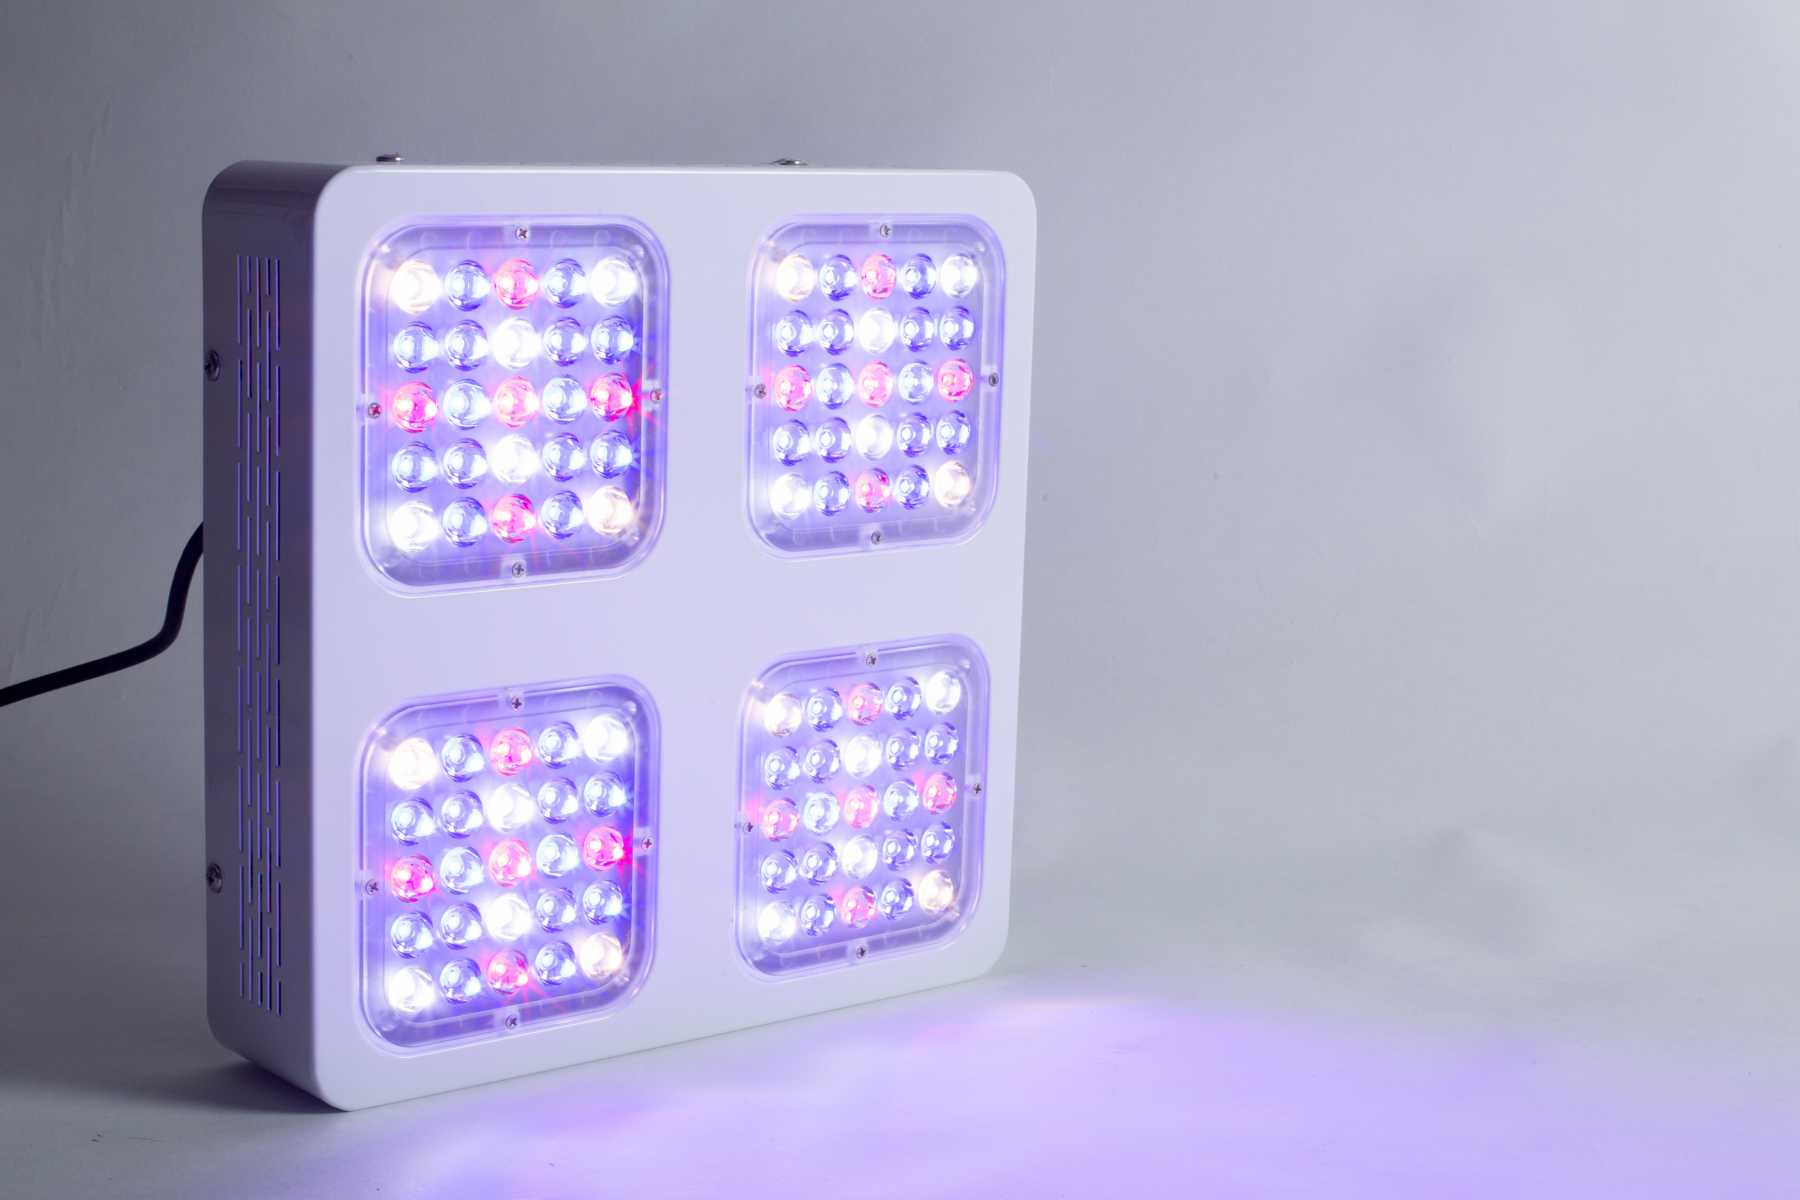 Monster m4 led grow lampe fr wachstum kaufen fr 349 eur monster m4 200w led grow lampe wachstum parisarafo Image collections